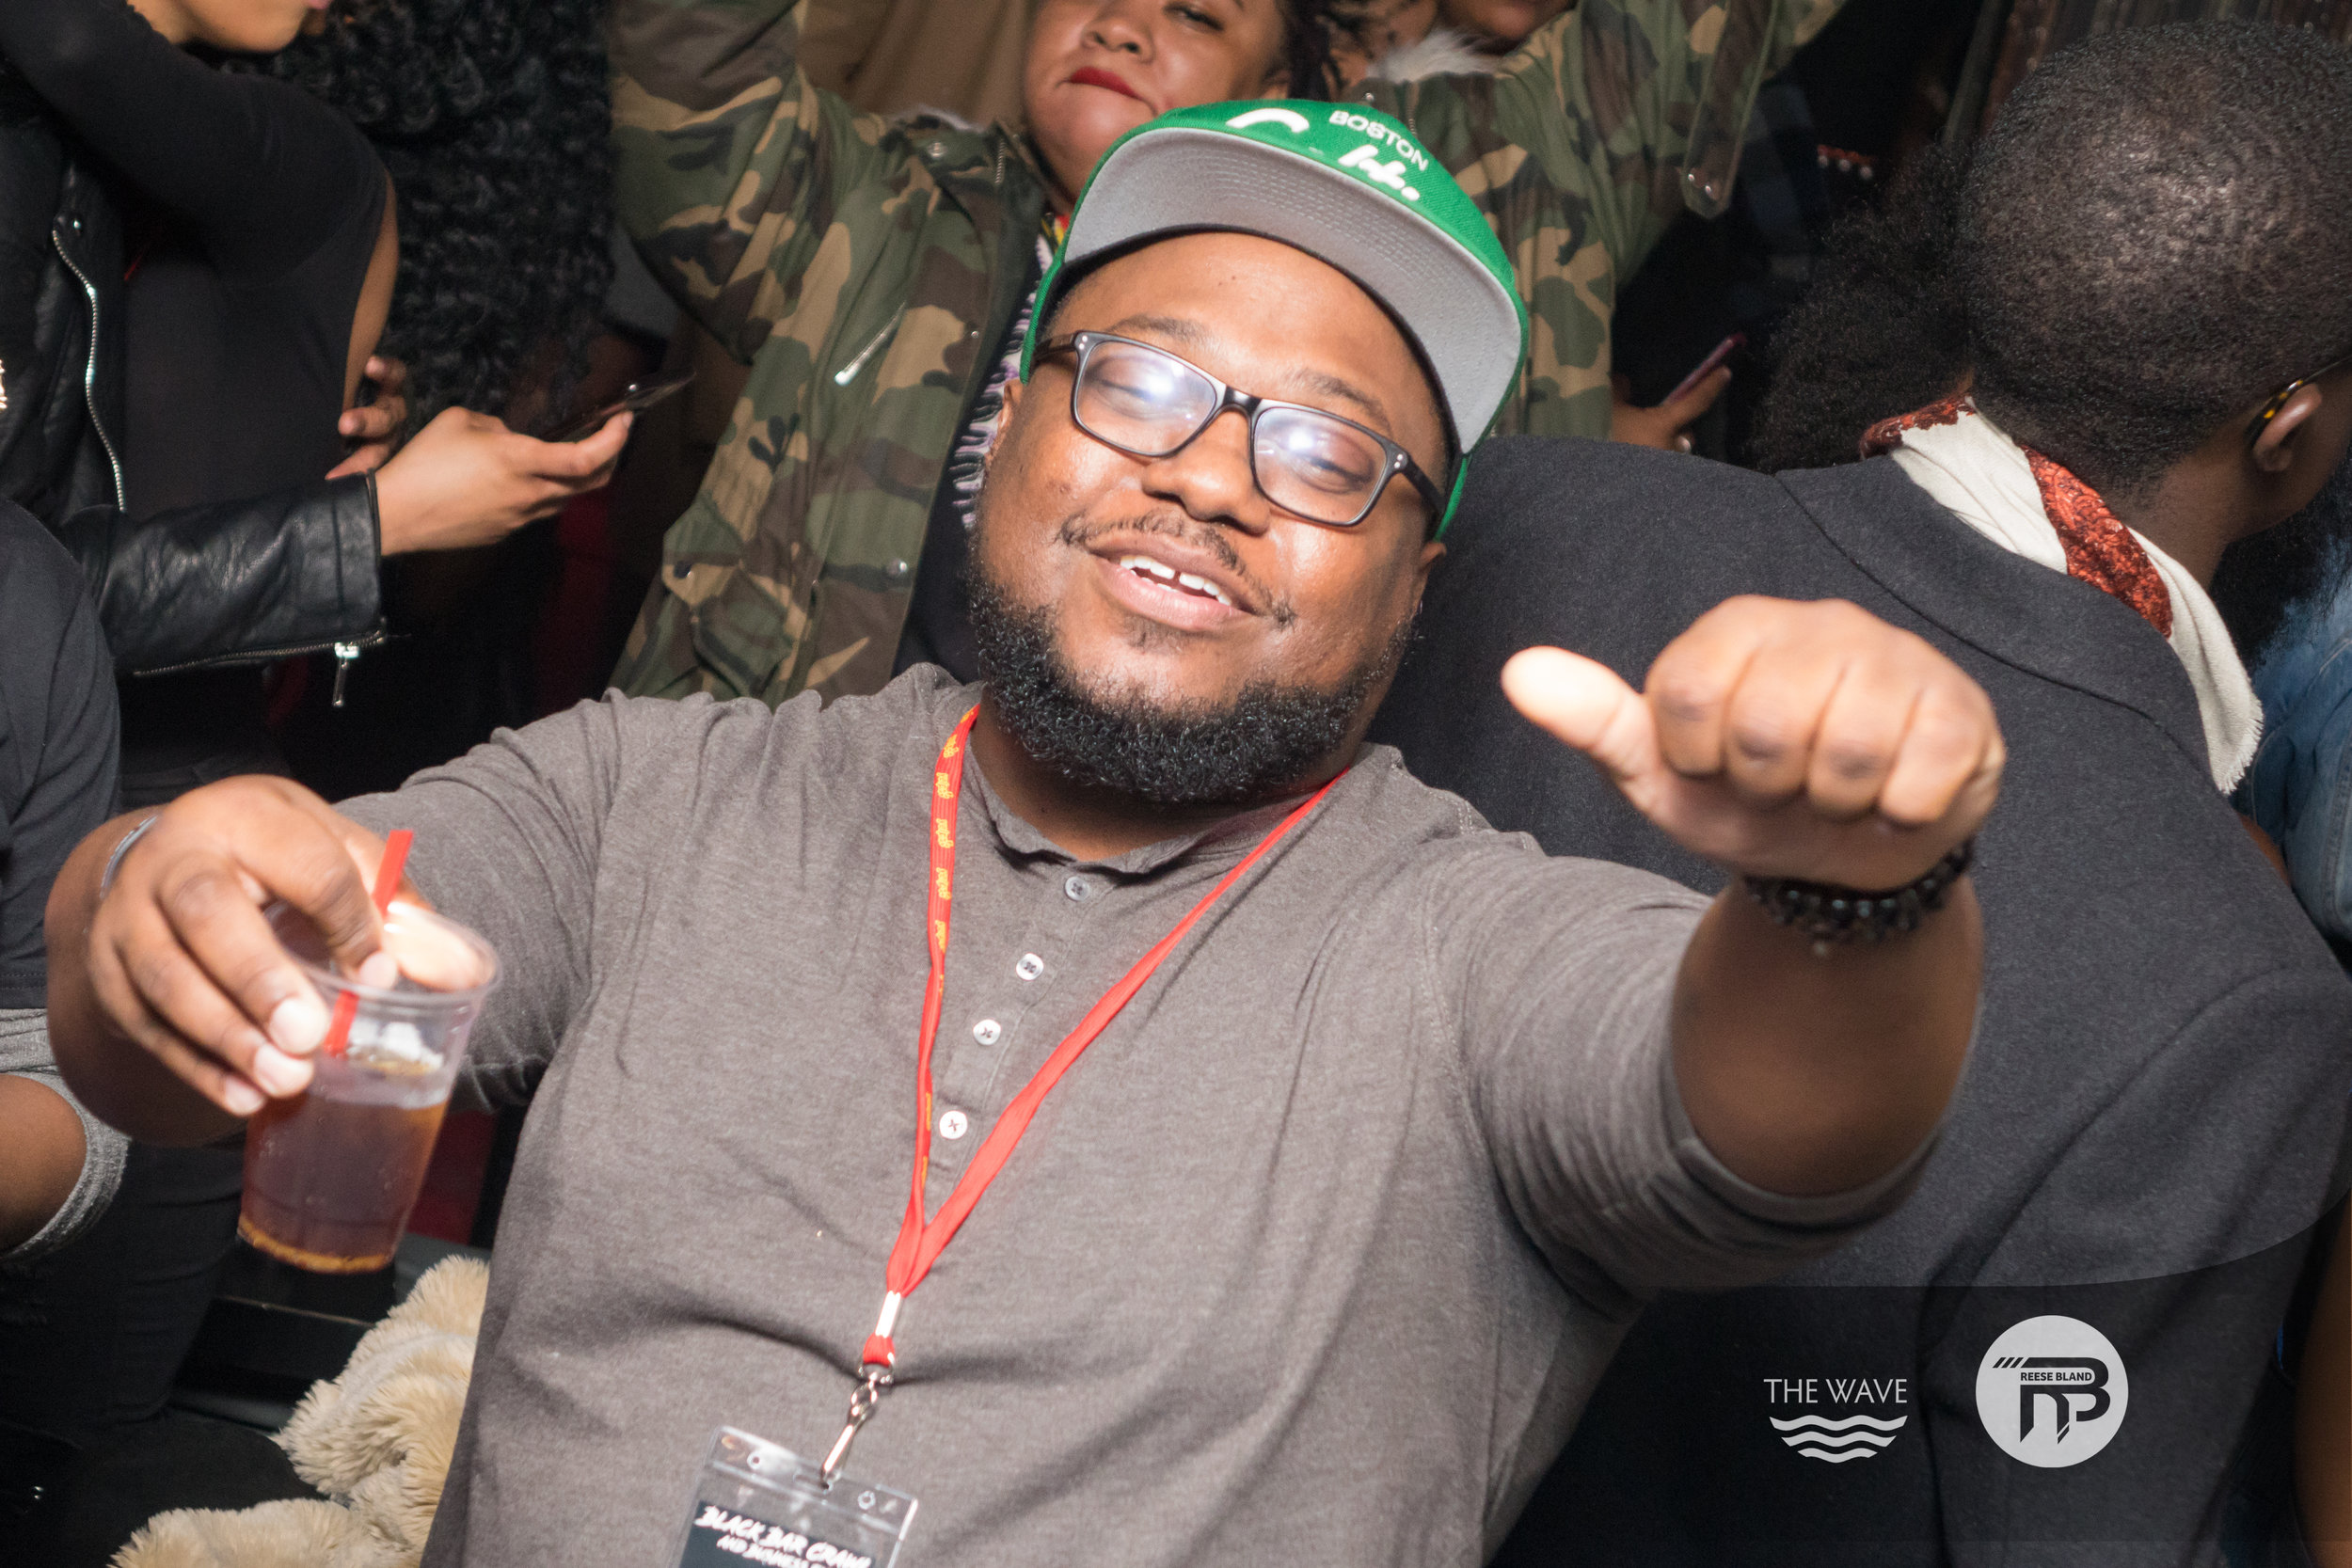 WaveDC-BlackBarCrawl-2-2018-06882.jpg